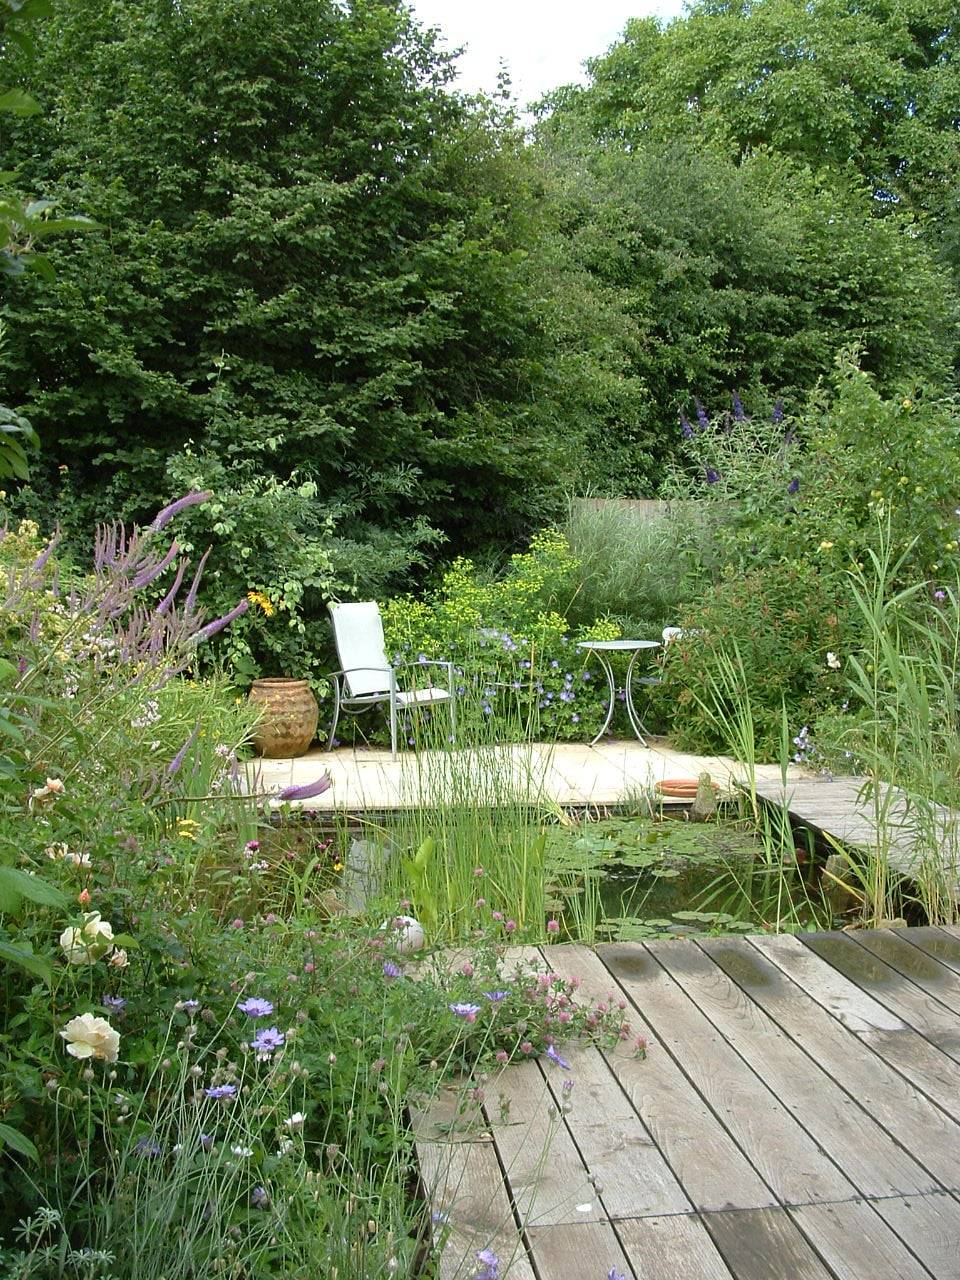 A small estate garden is transformed into an oasis for wildlife and people with lush planting, water and secluded sitting areas.